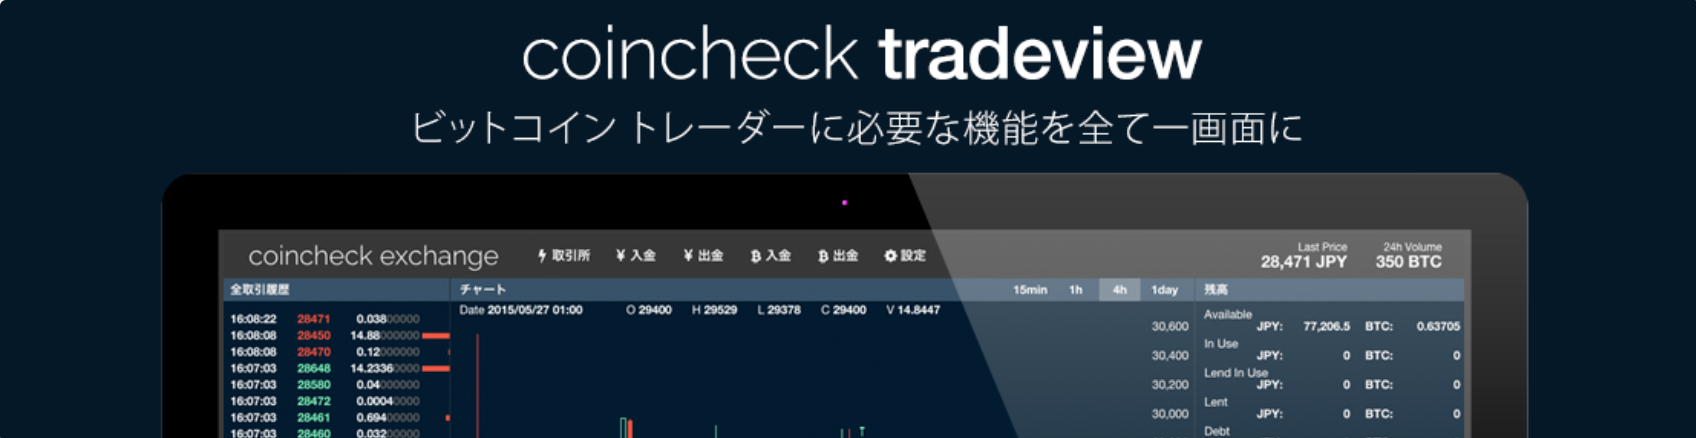 coincheck tradeview